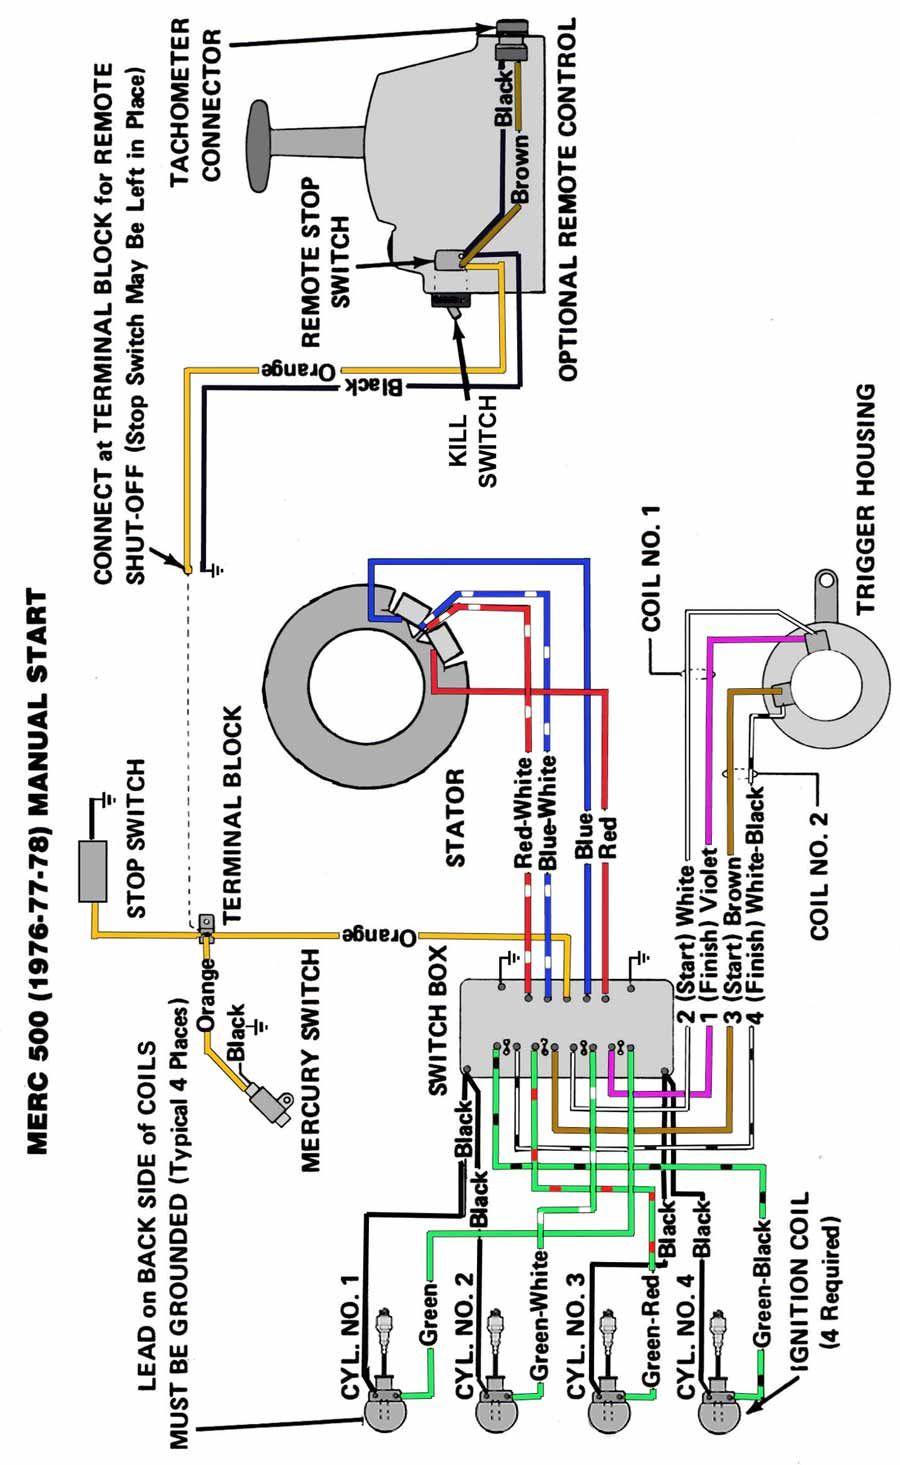 mercury outboard wiring diagram kill switch 2002 chevy trailblazer ltz radio power connections on merc 50 pull start? page: 2 - iboats boating forums   9470186